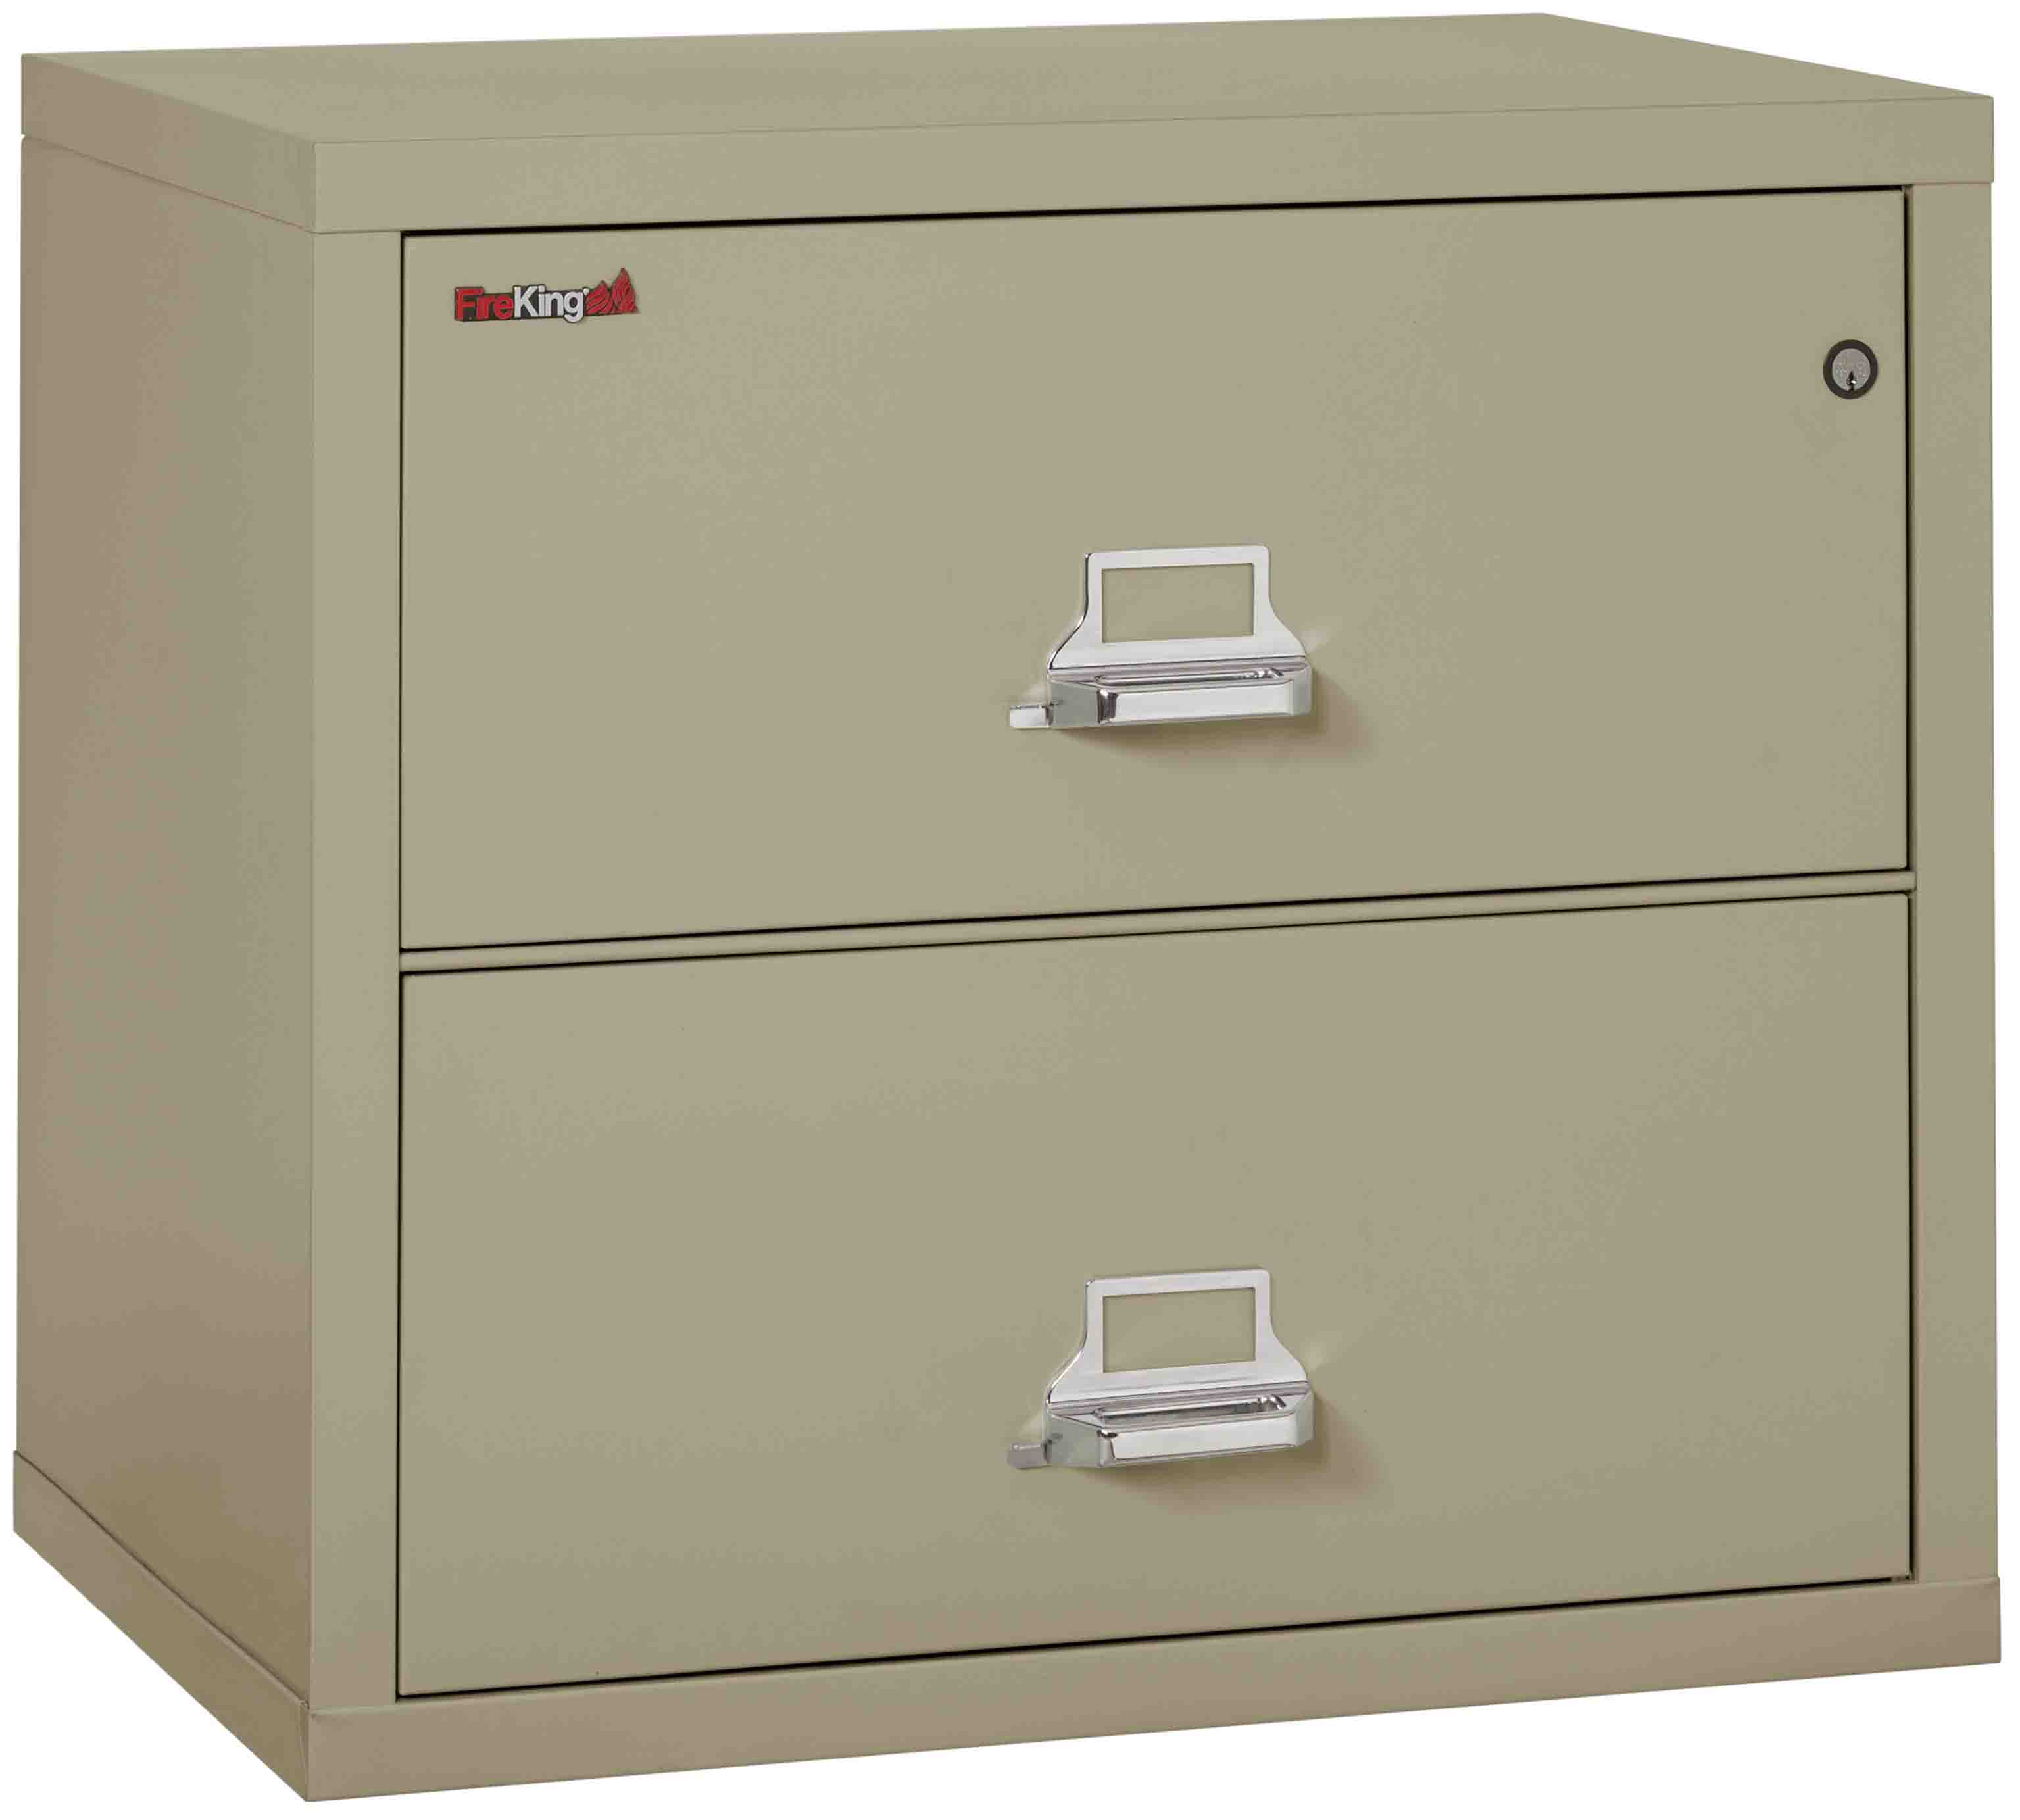 ... Fire King 2 3122 C   Lateral Fireproof File Cabinets   2 Drawer 1 ...